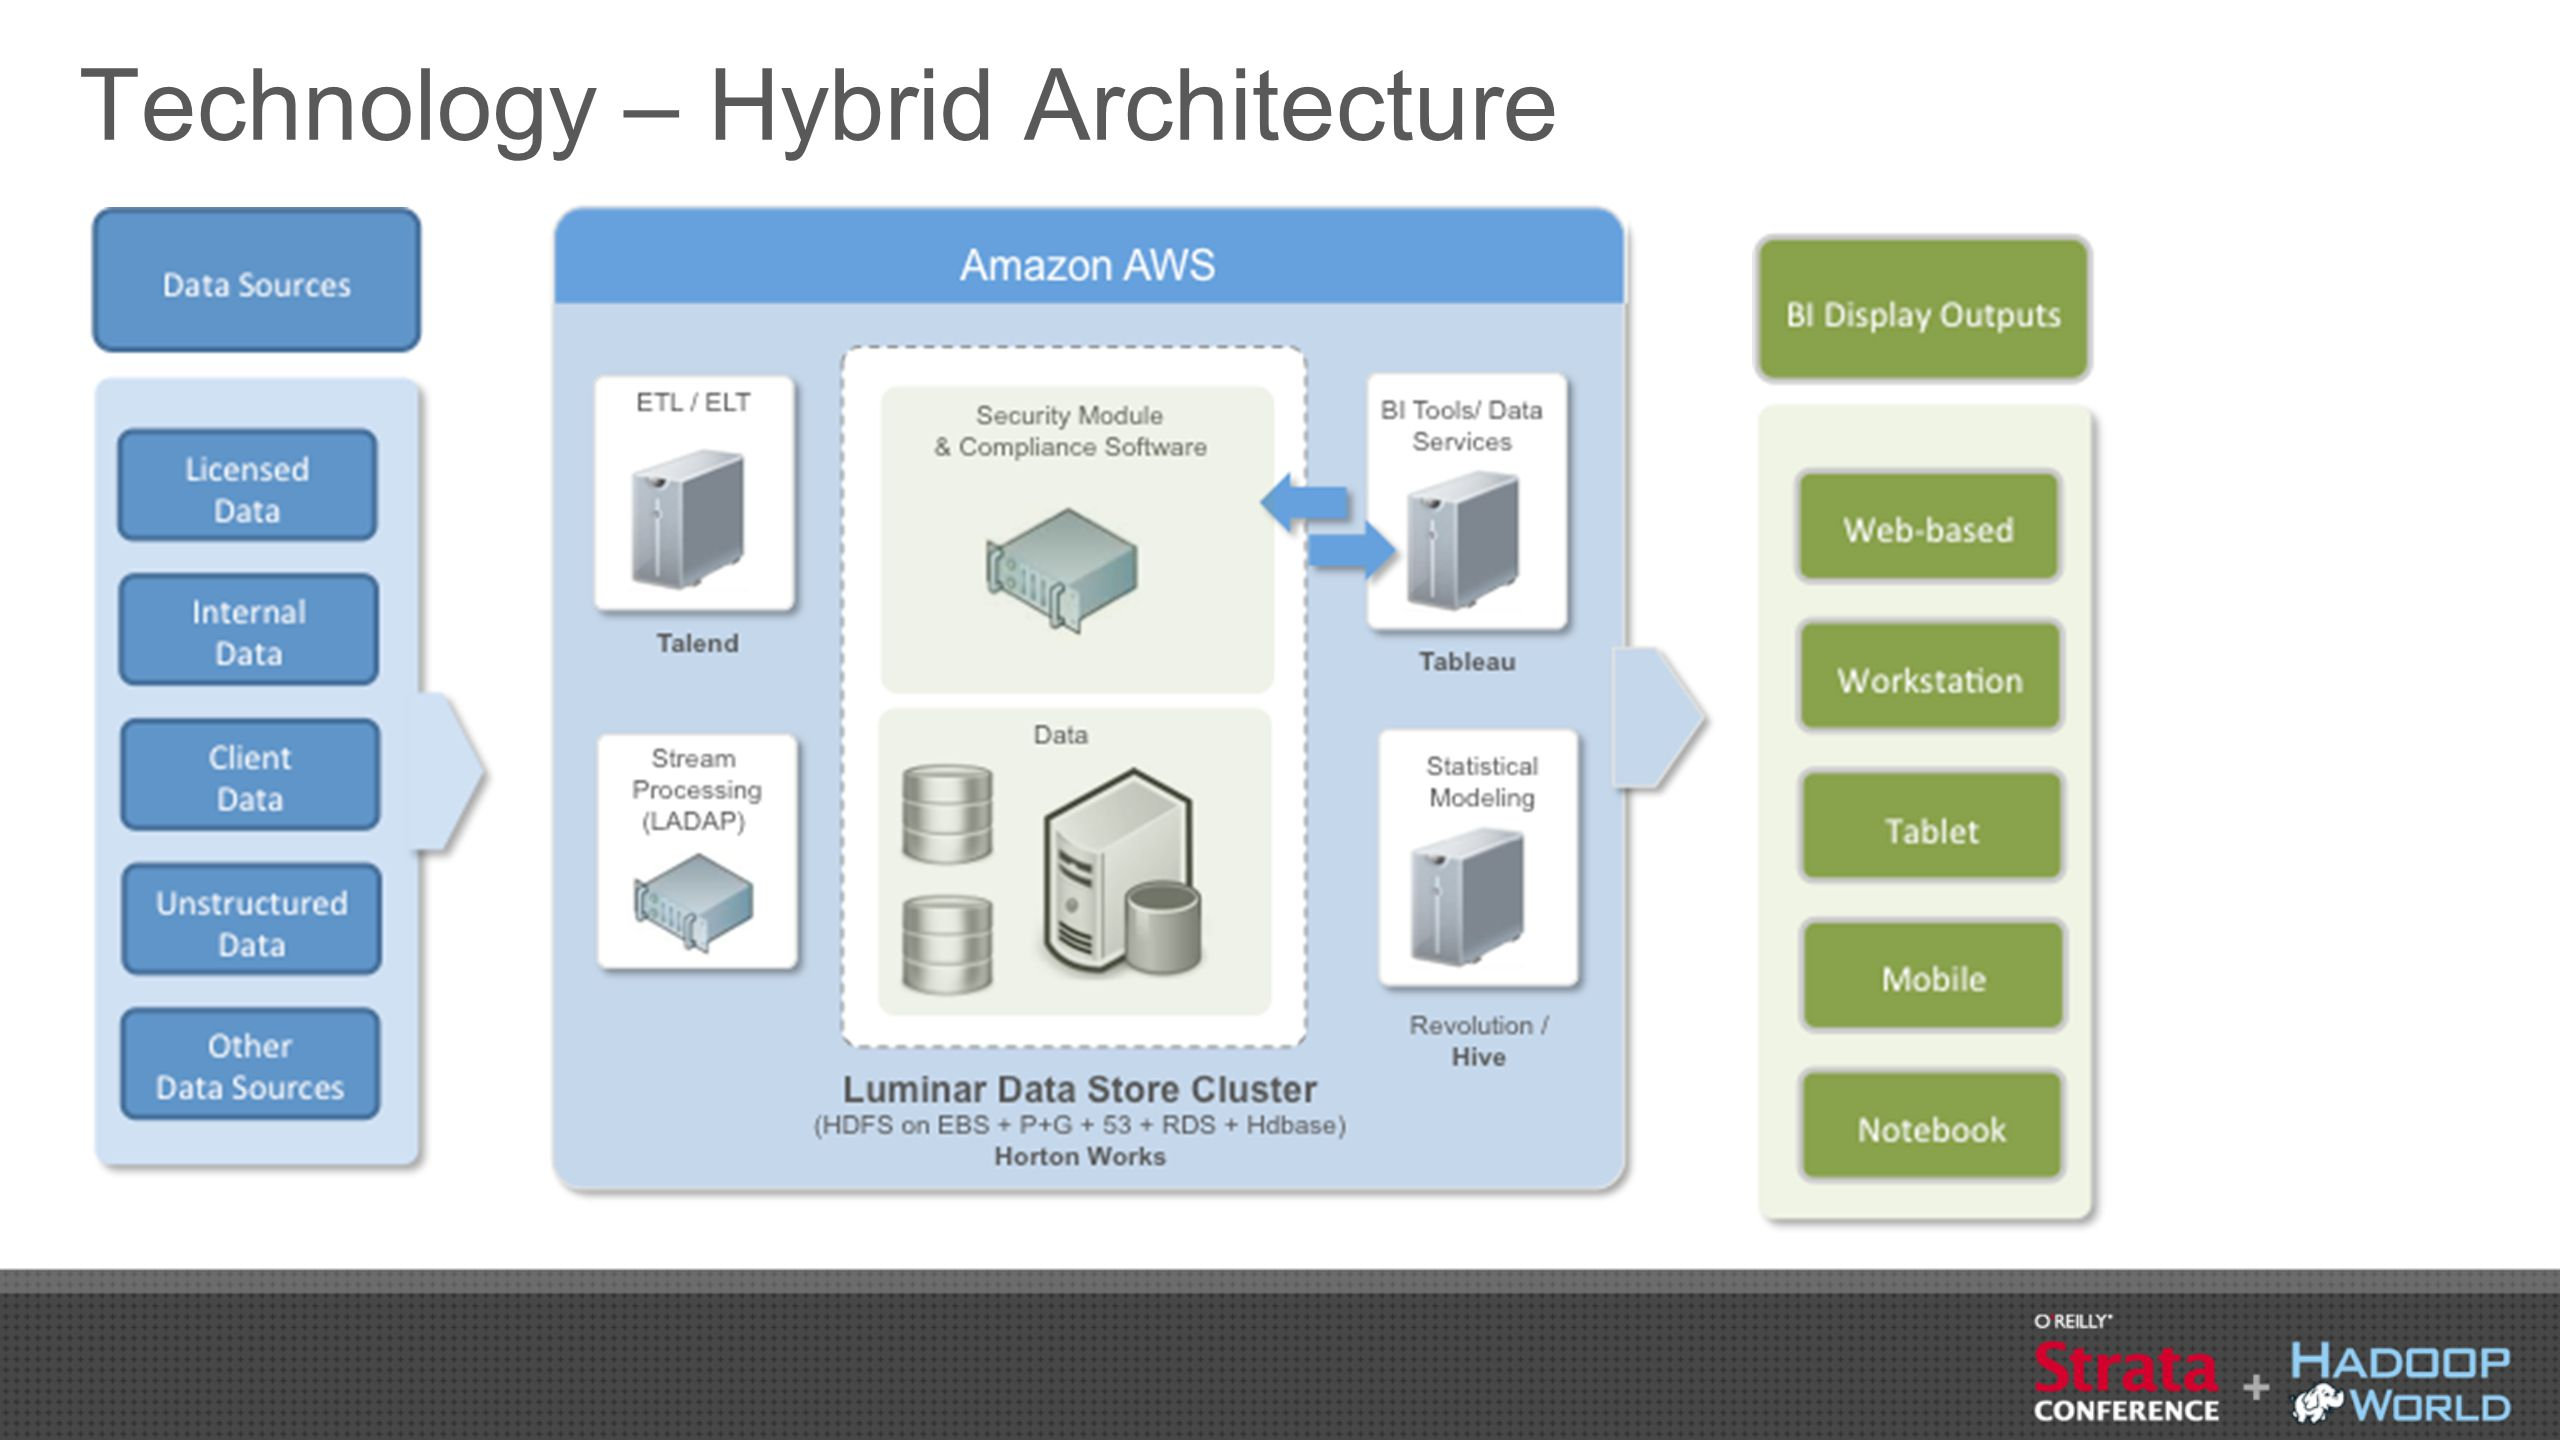 Slide | 25 Implemented Solution Overview ●Hortonworks as technology integrator ●Hadoop Cluster provisioned on Amazon EC2 in under four hours ●Original data sets imported from MySQL to HDFS/Hive using Sqoop and Talend ●Existing R scripts were modified to work with Hive for data analysis.